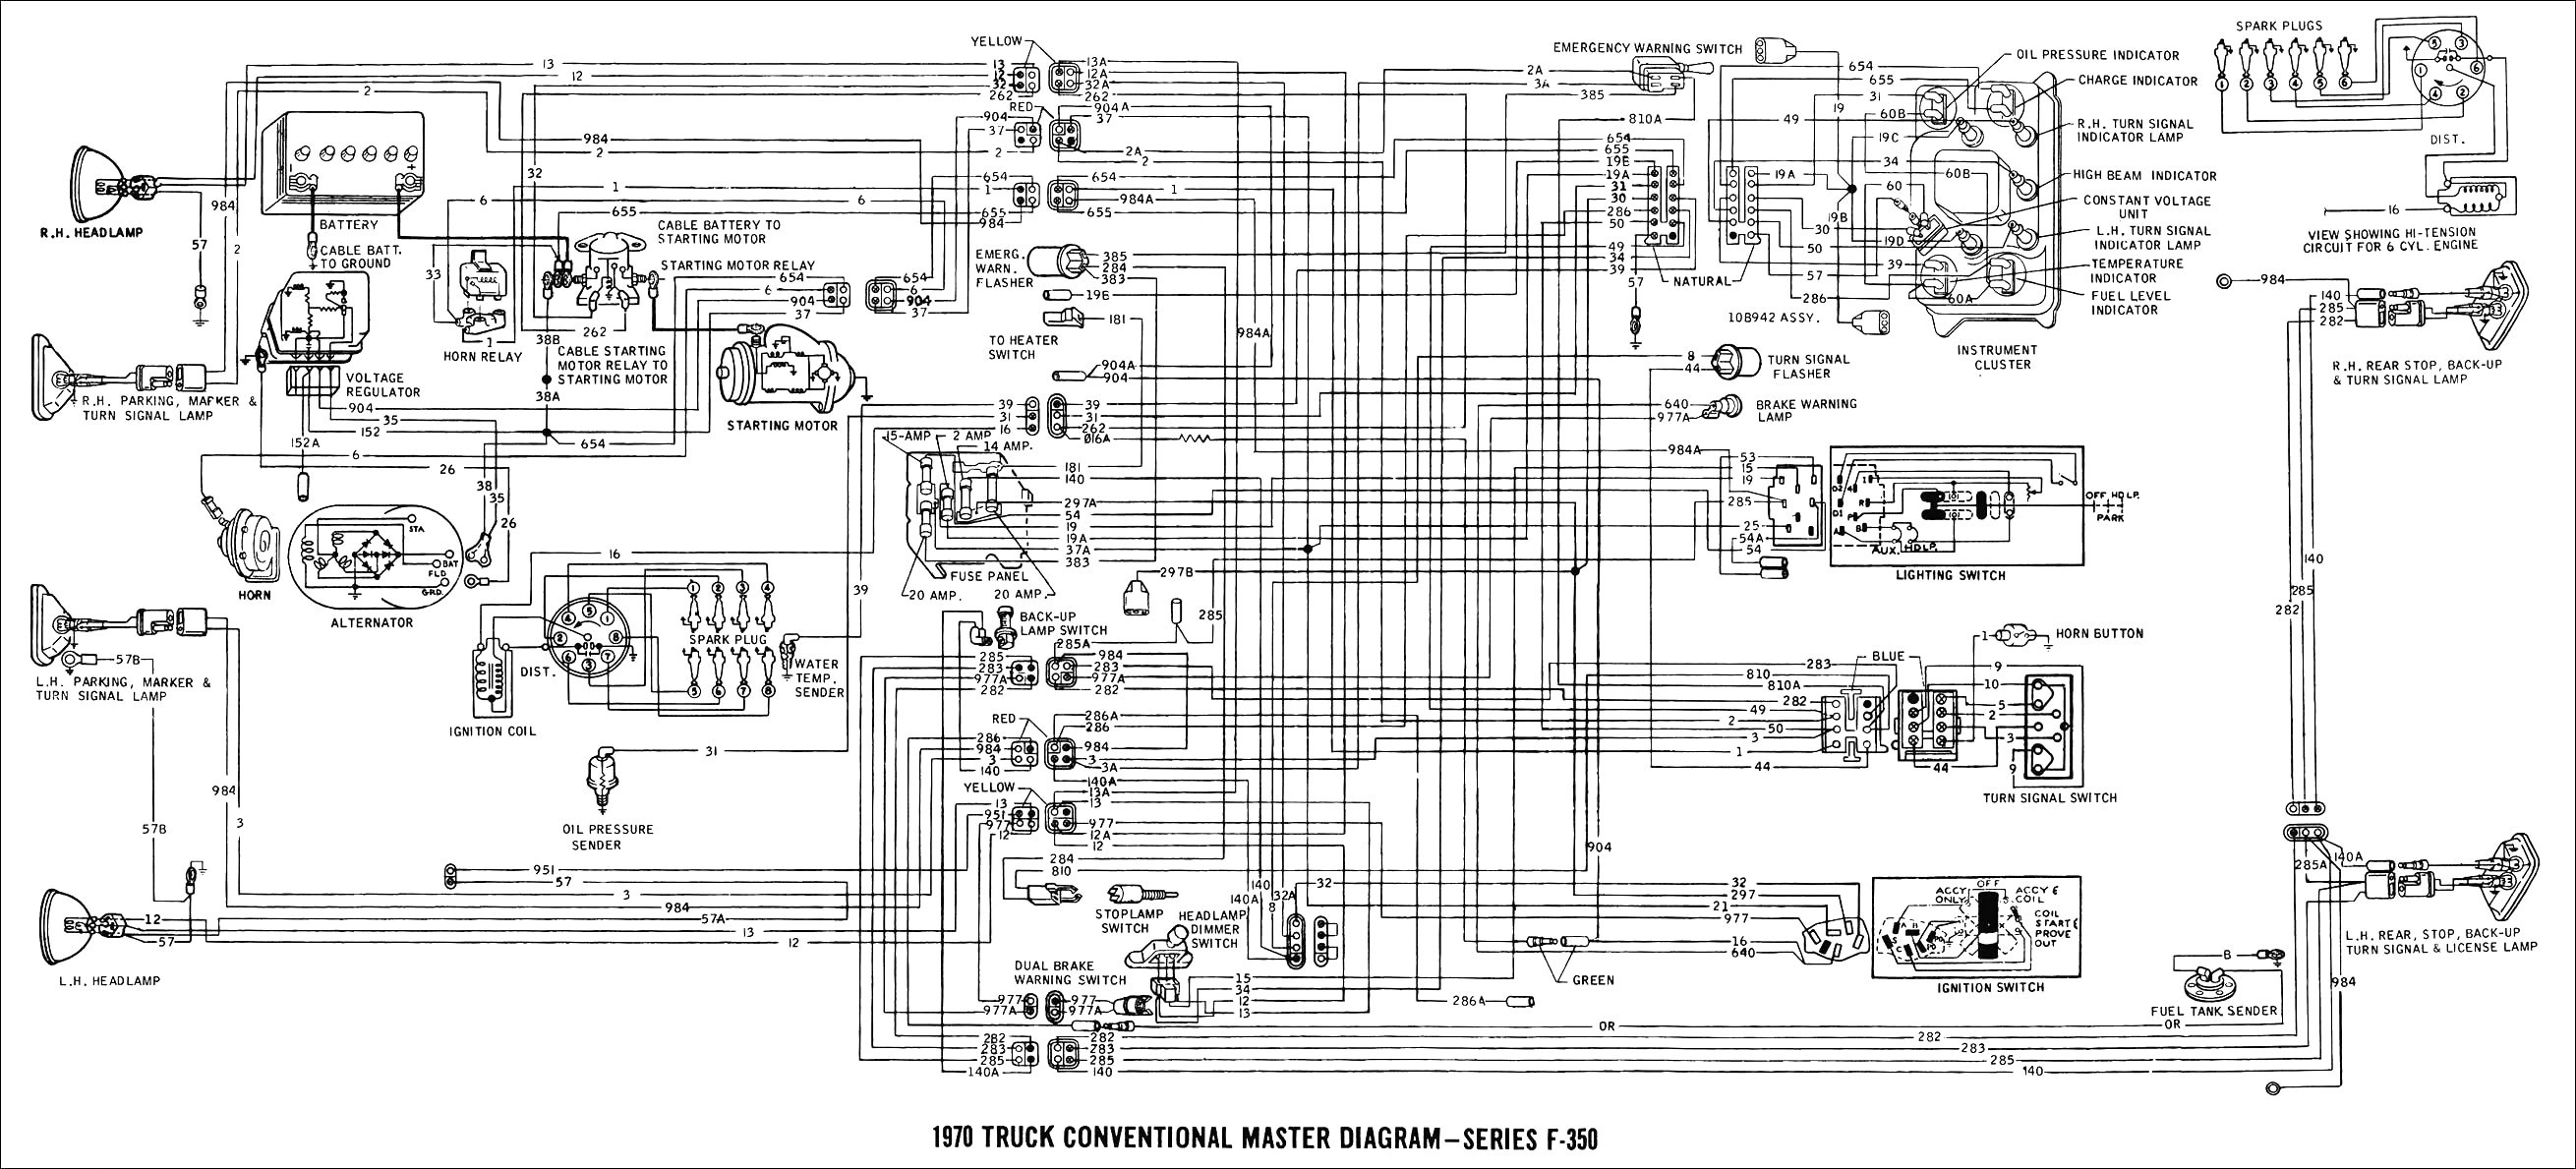 2008 ford Fusion Engine Diagram 2001 ford Ranger Starter Wiring Diagram Inspirational 1999 ford Of 2008 ford Fusion Engine Diagram